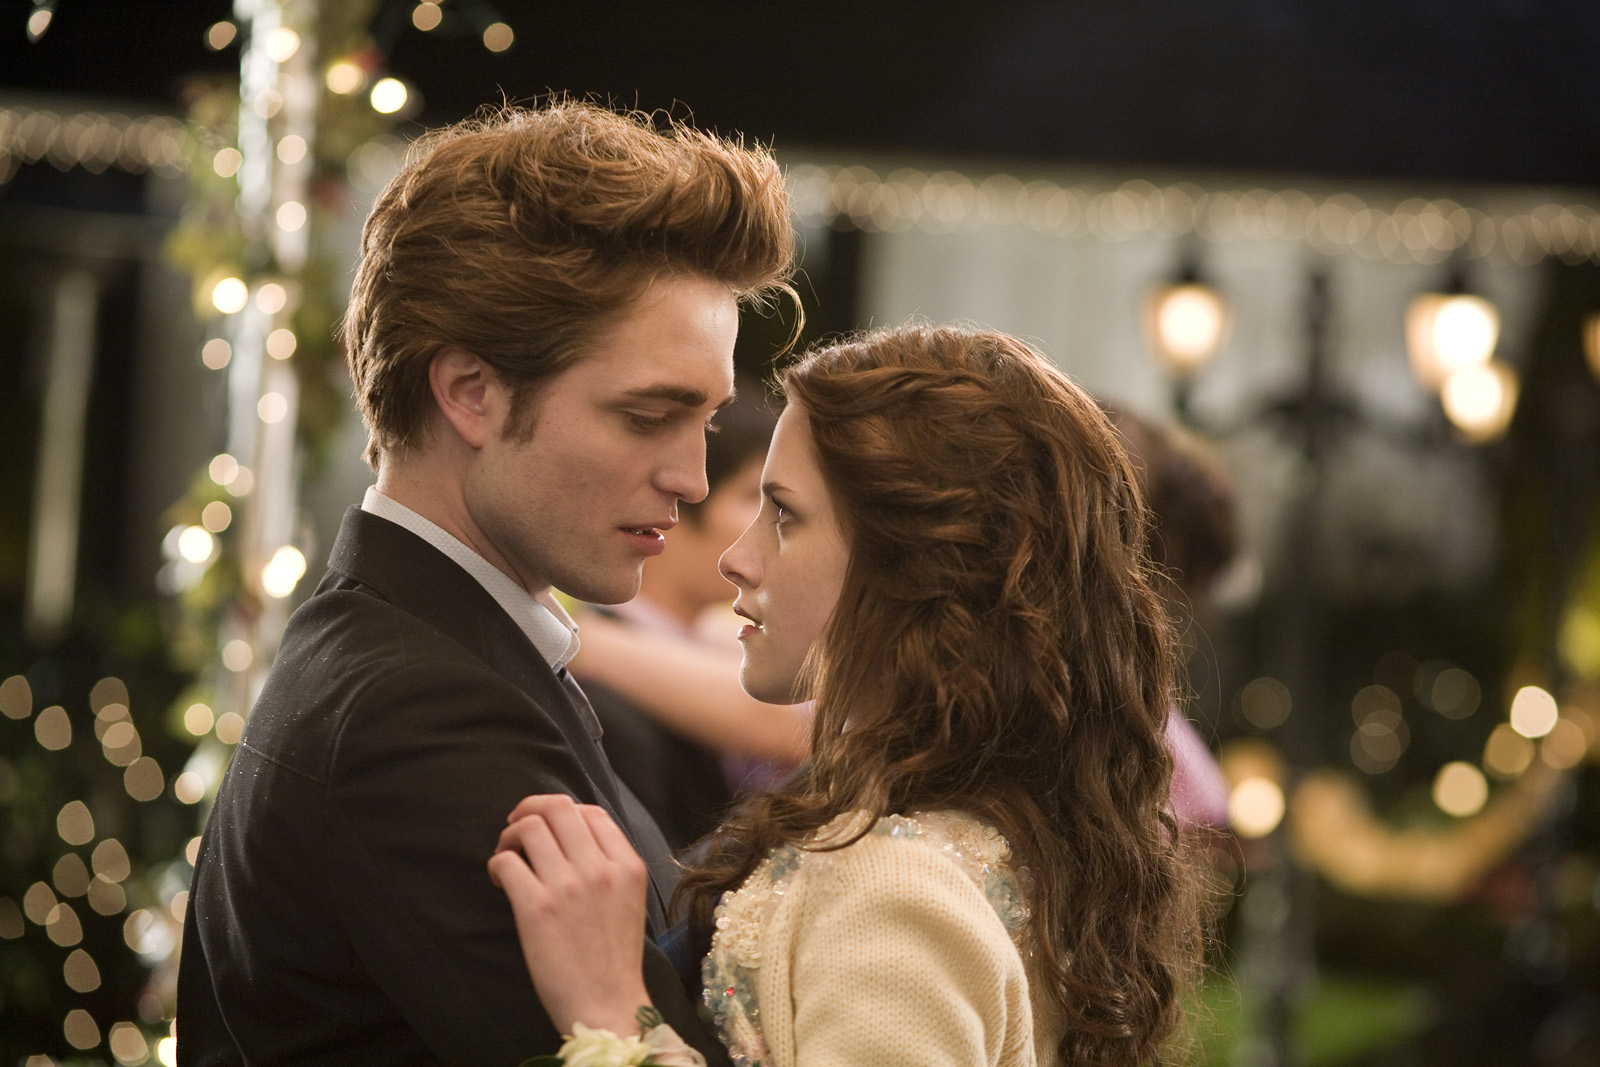 Edward et bella world of twilight Twilight edward photos